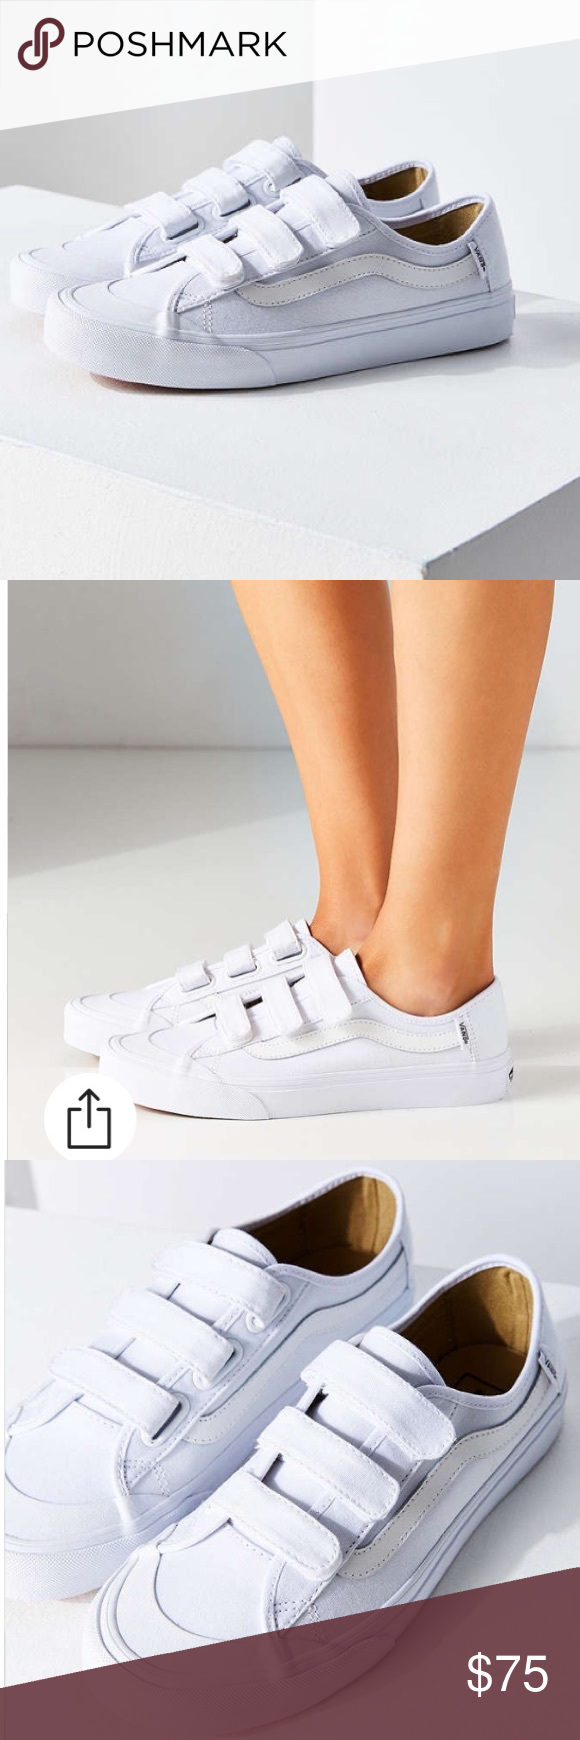 3affc35d8b White Vans Velcro Black Ball Priz 5 Worn once! Super cute and sold out in  this size! 3.5 men  5 women. Vans Shoes Sneakers